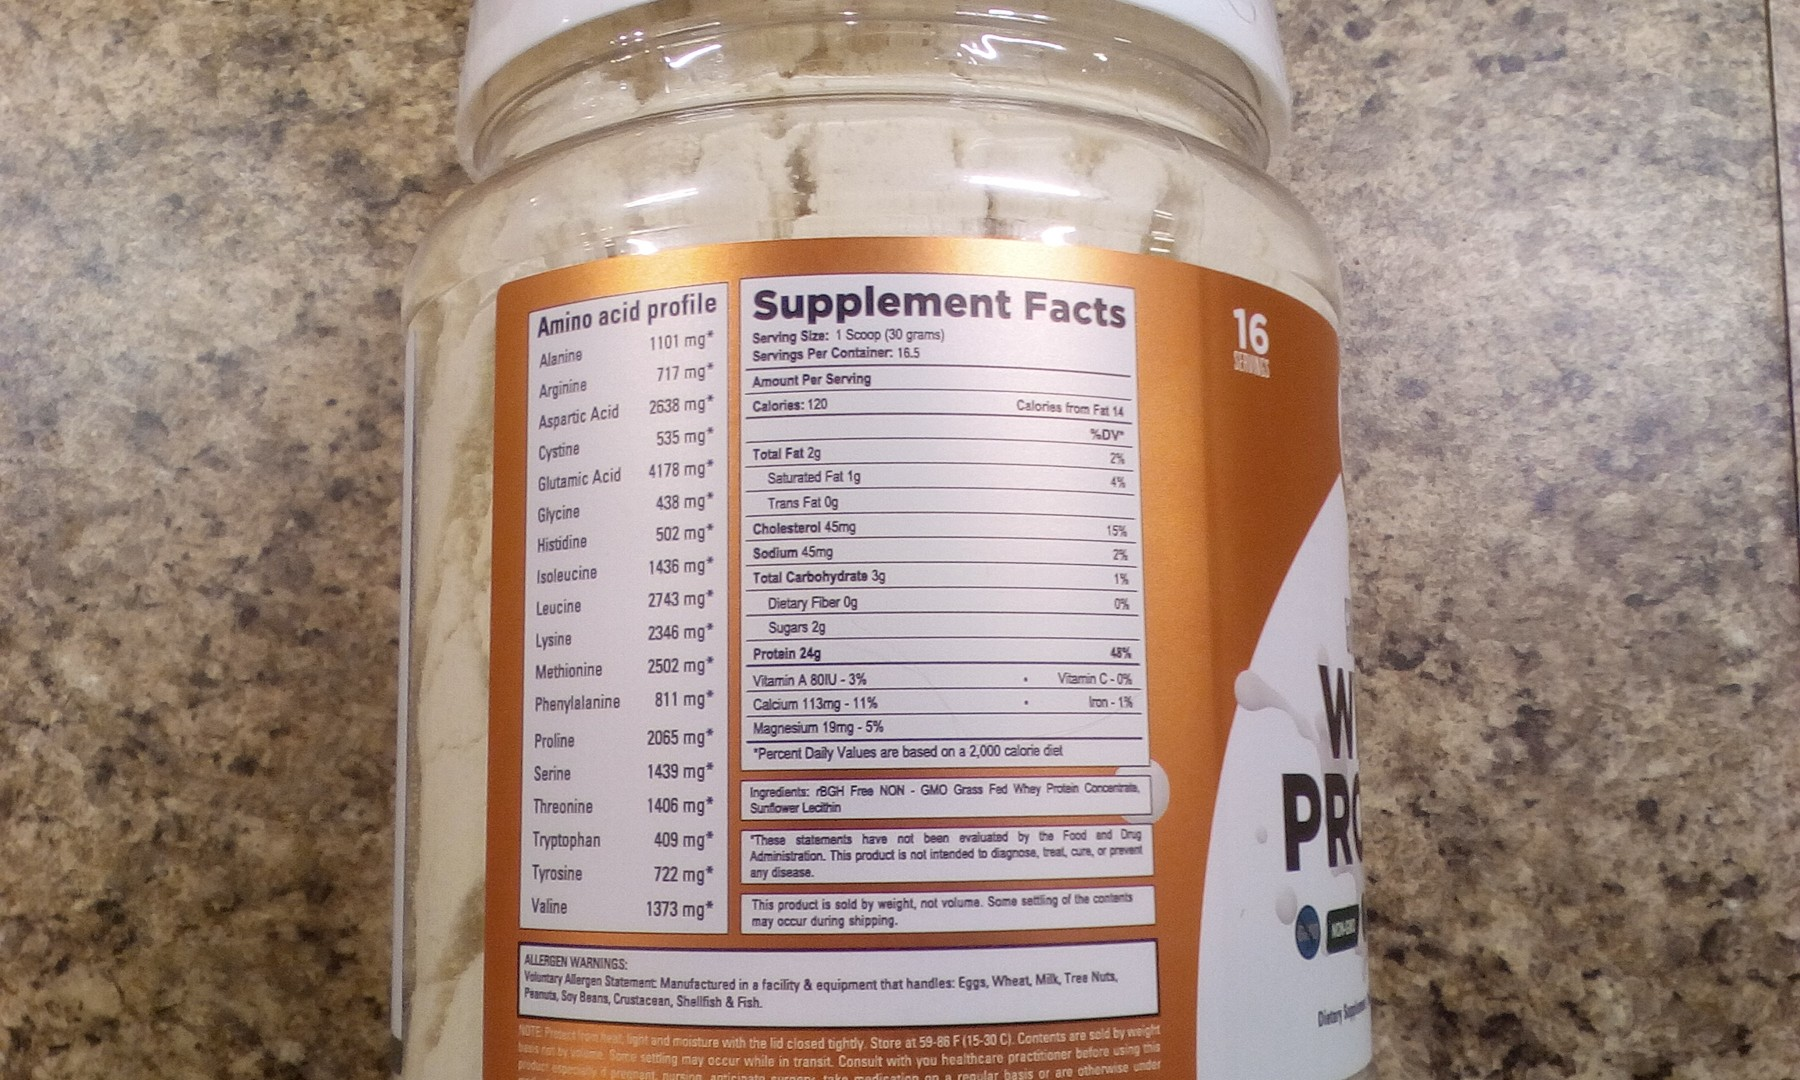 Non-flavored whey protein